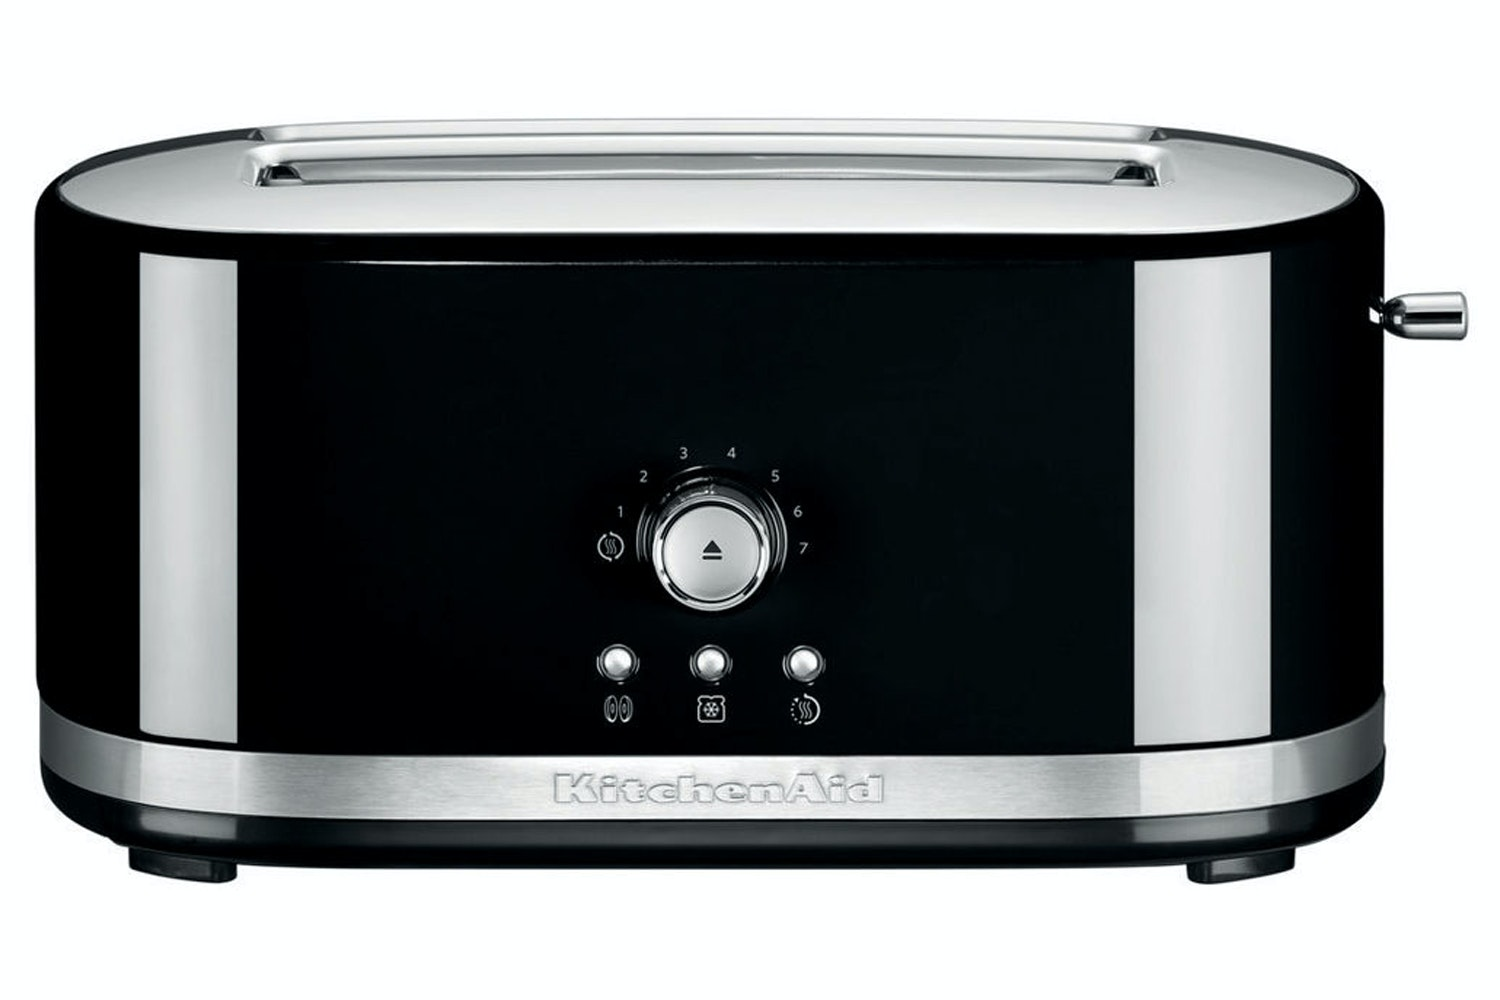 KitchenAid 4 Slice Toaster | 5KMT4116BOB | Onyx Black